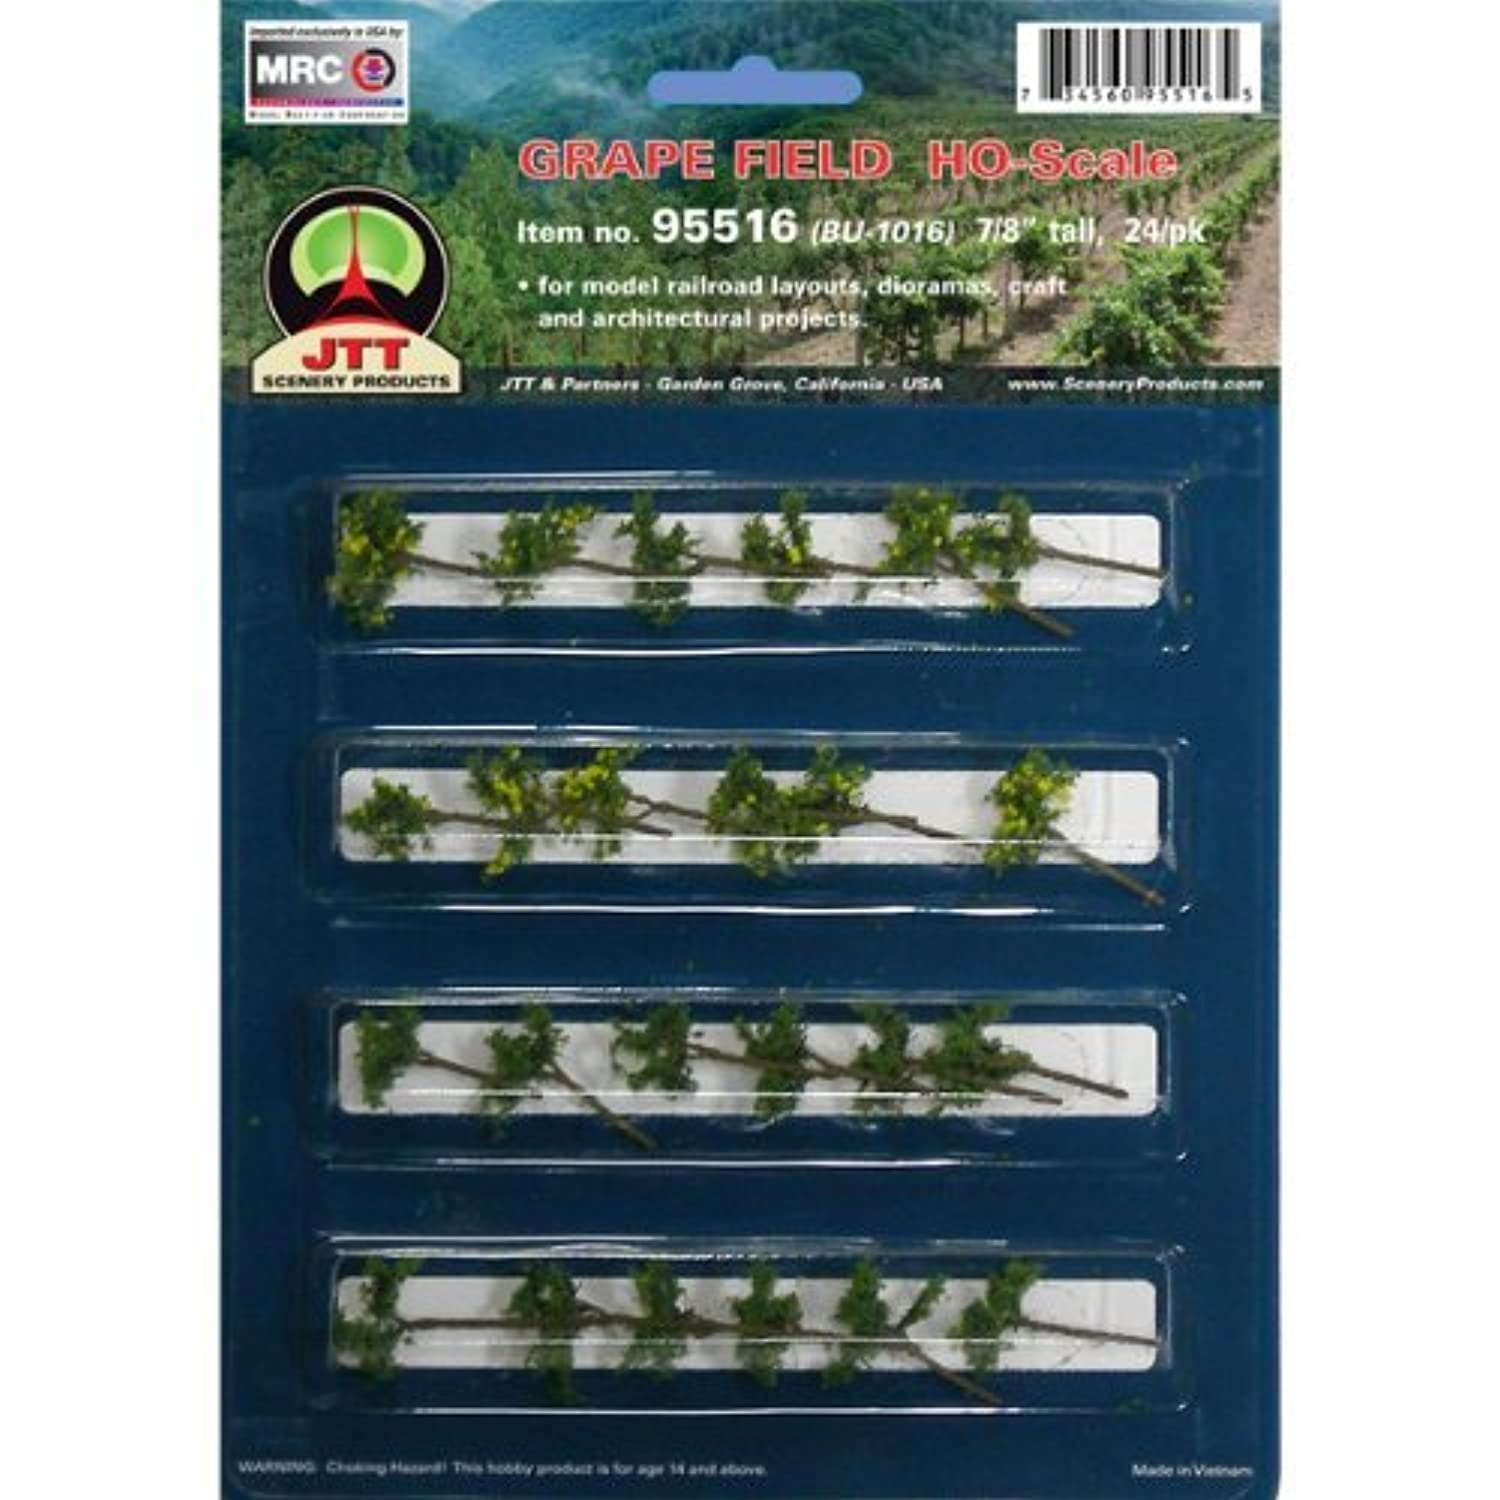 JTT Scenery Products Flowering Plants Series: Grape Vines 7/8 [並行輸入品]